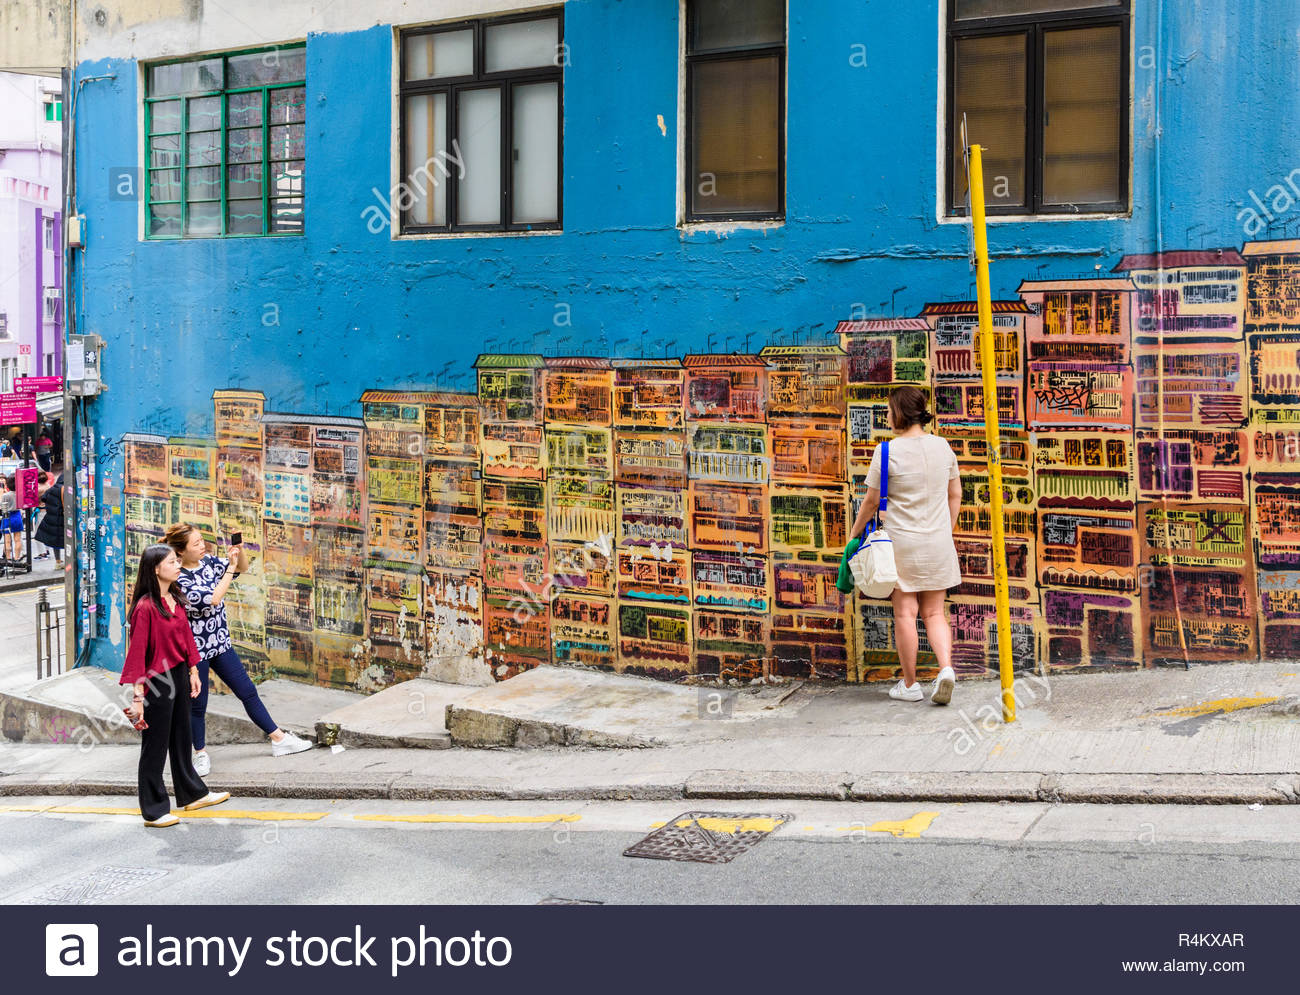 People taking photos next to the public street art murals of old townhouses along Graham St, Central, Hong Kong - Stock Image